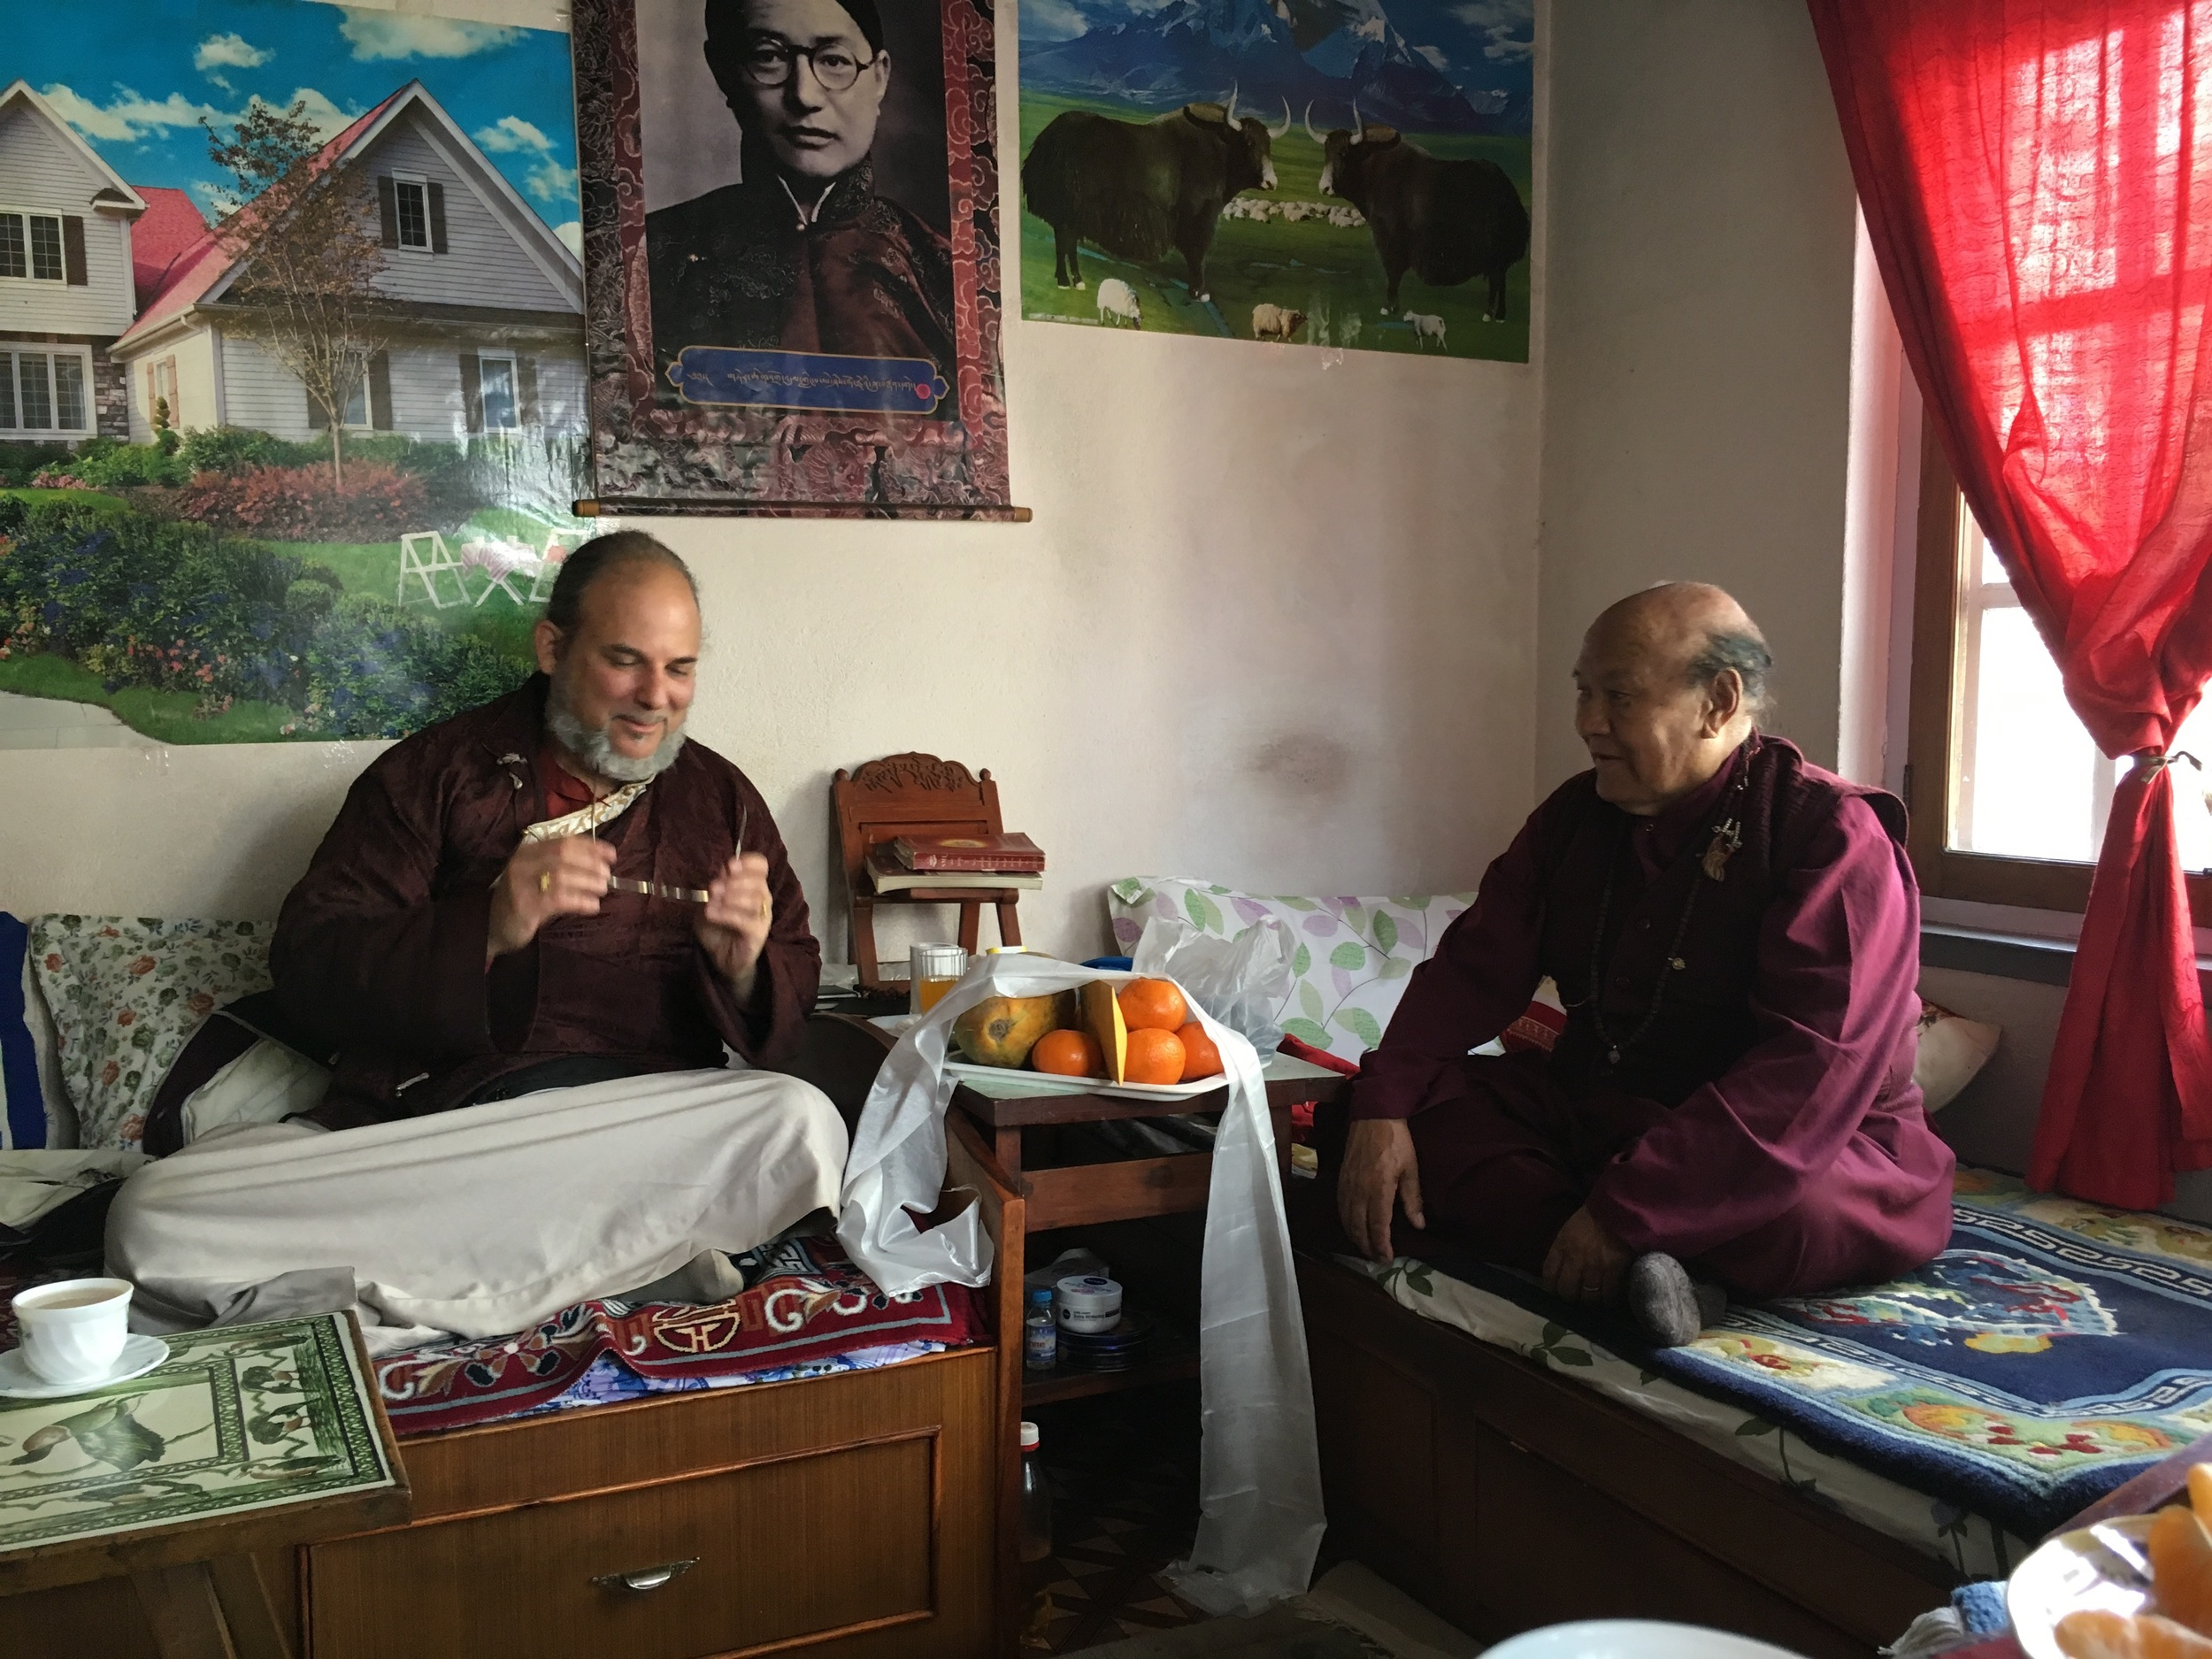 Lama Rangbar with Lama Yedrol Rinpoche discussing the Mendrup drupchen in Nepal.